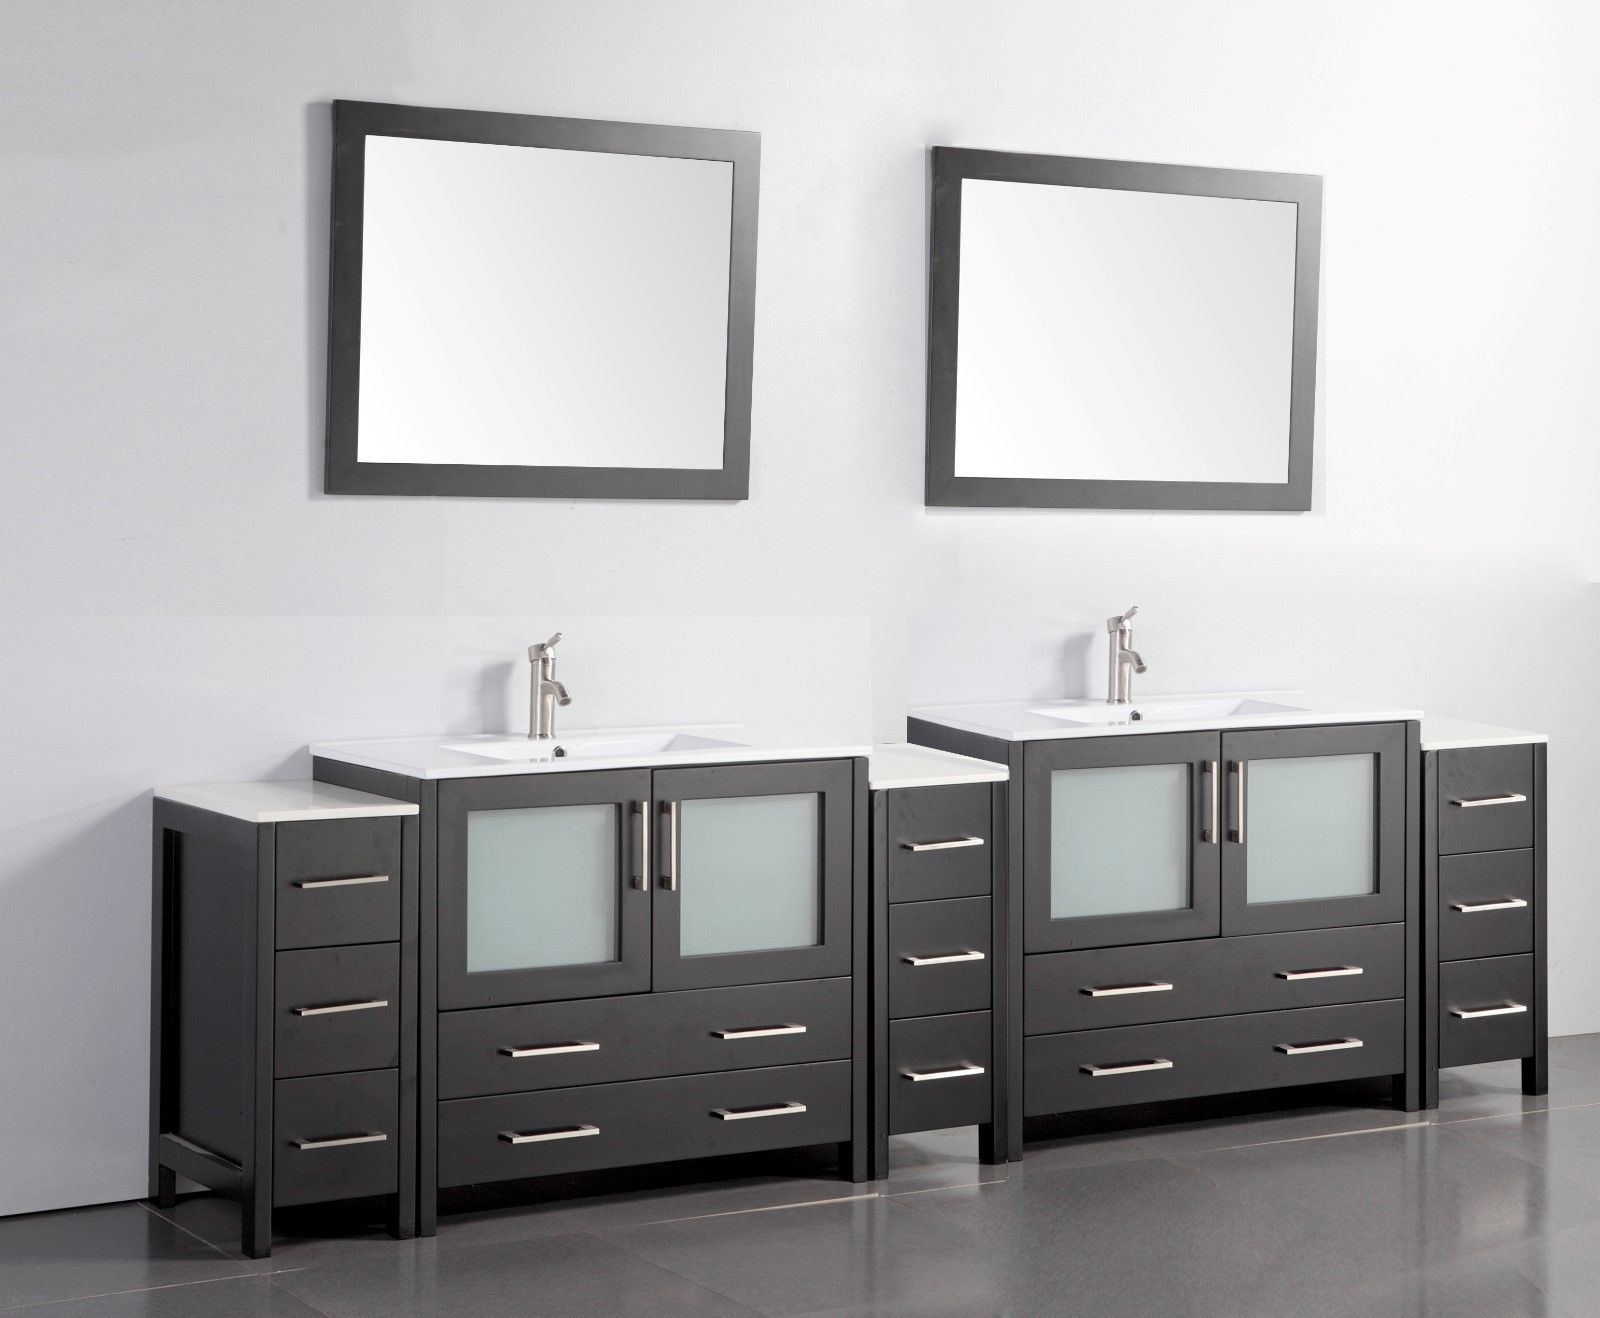 Vanity Art 108 Inch Double Sink Bathroom Vanity Set W Ceramic Top Va3036 108 Vanities